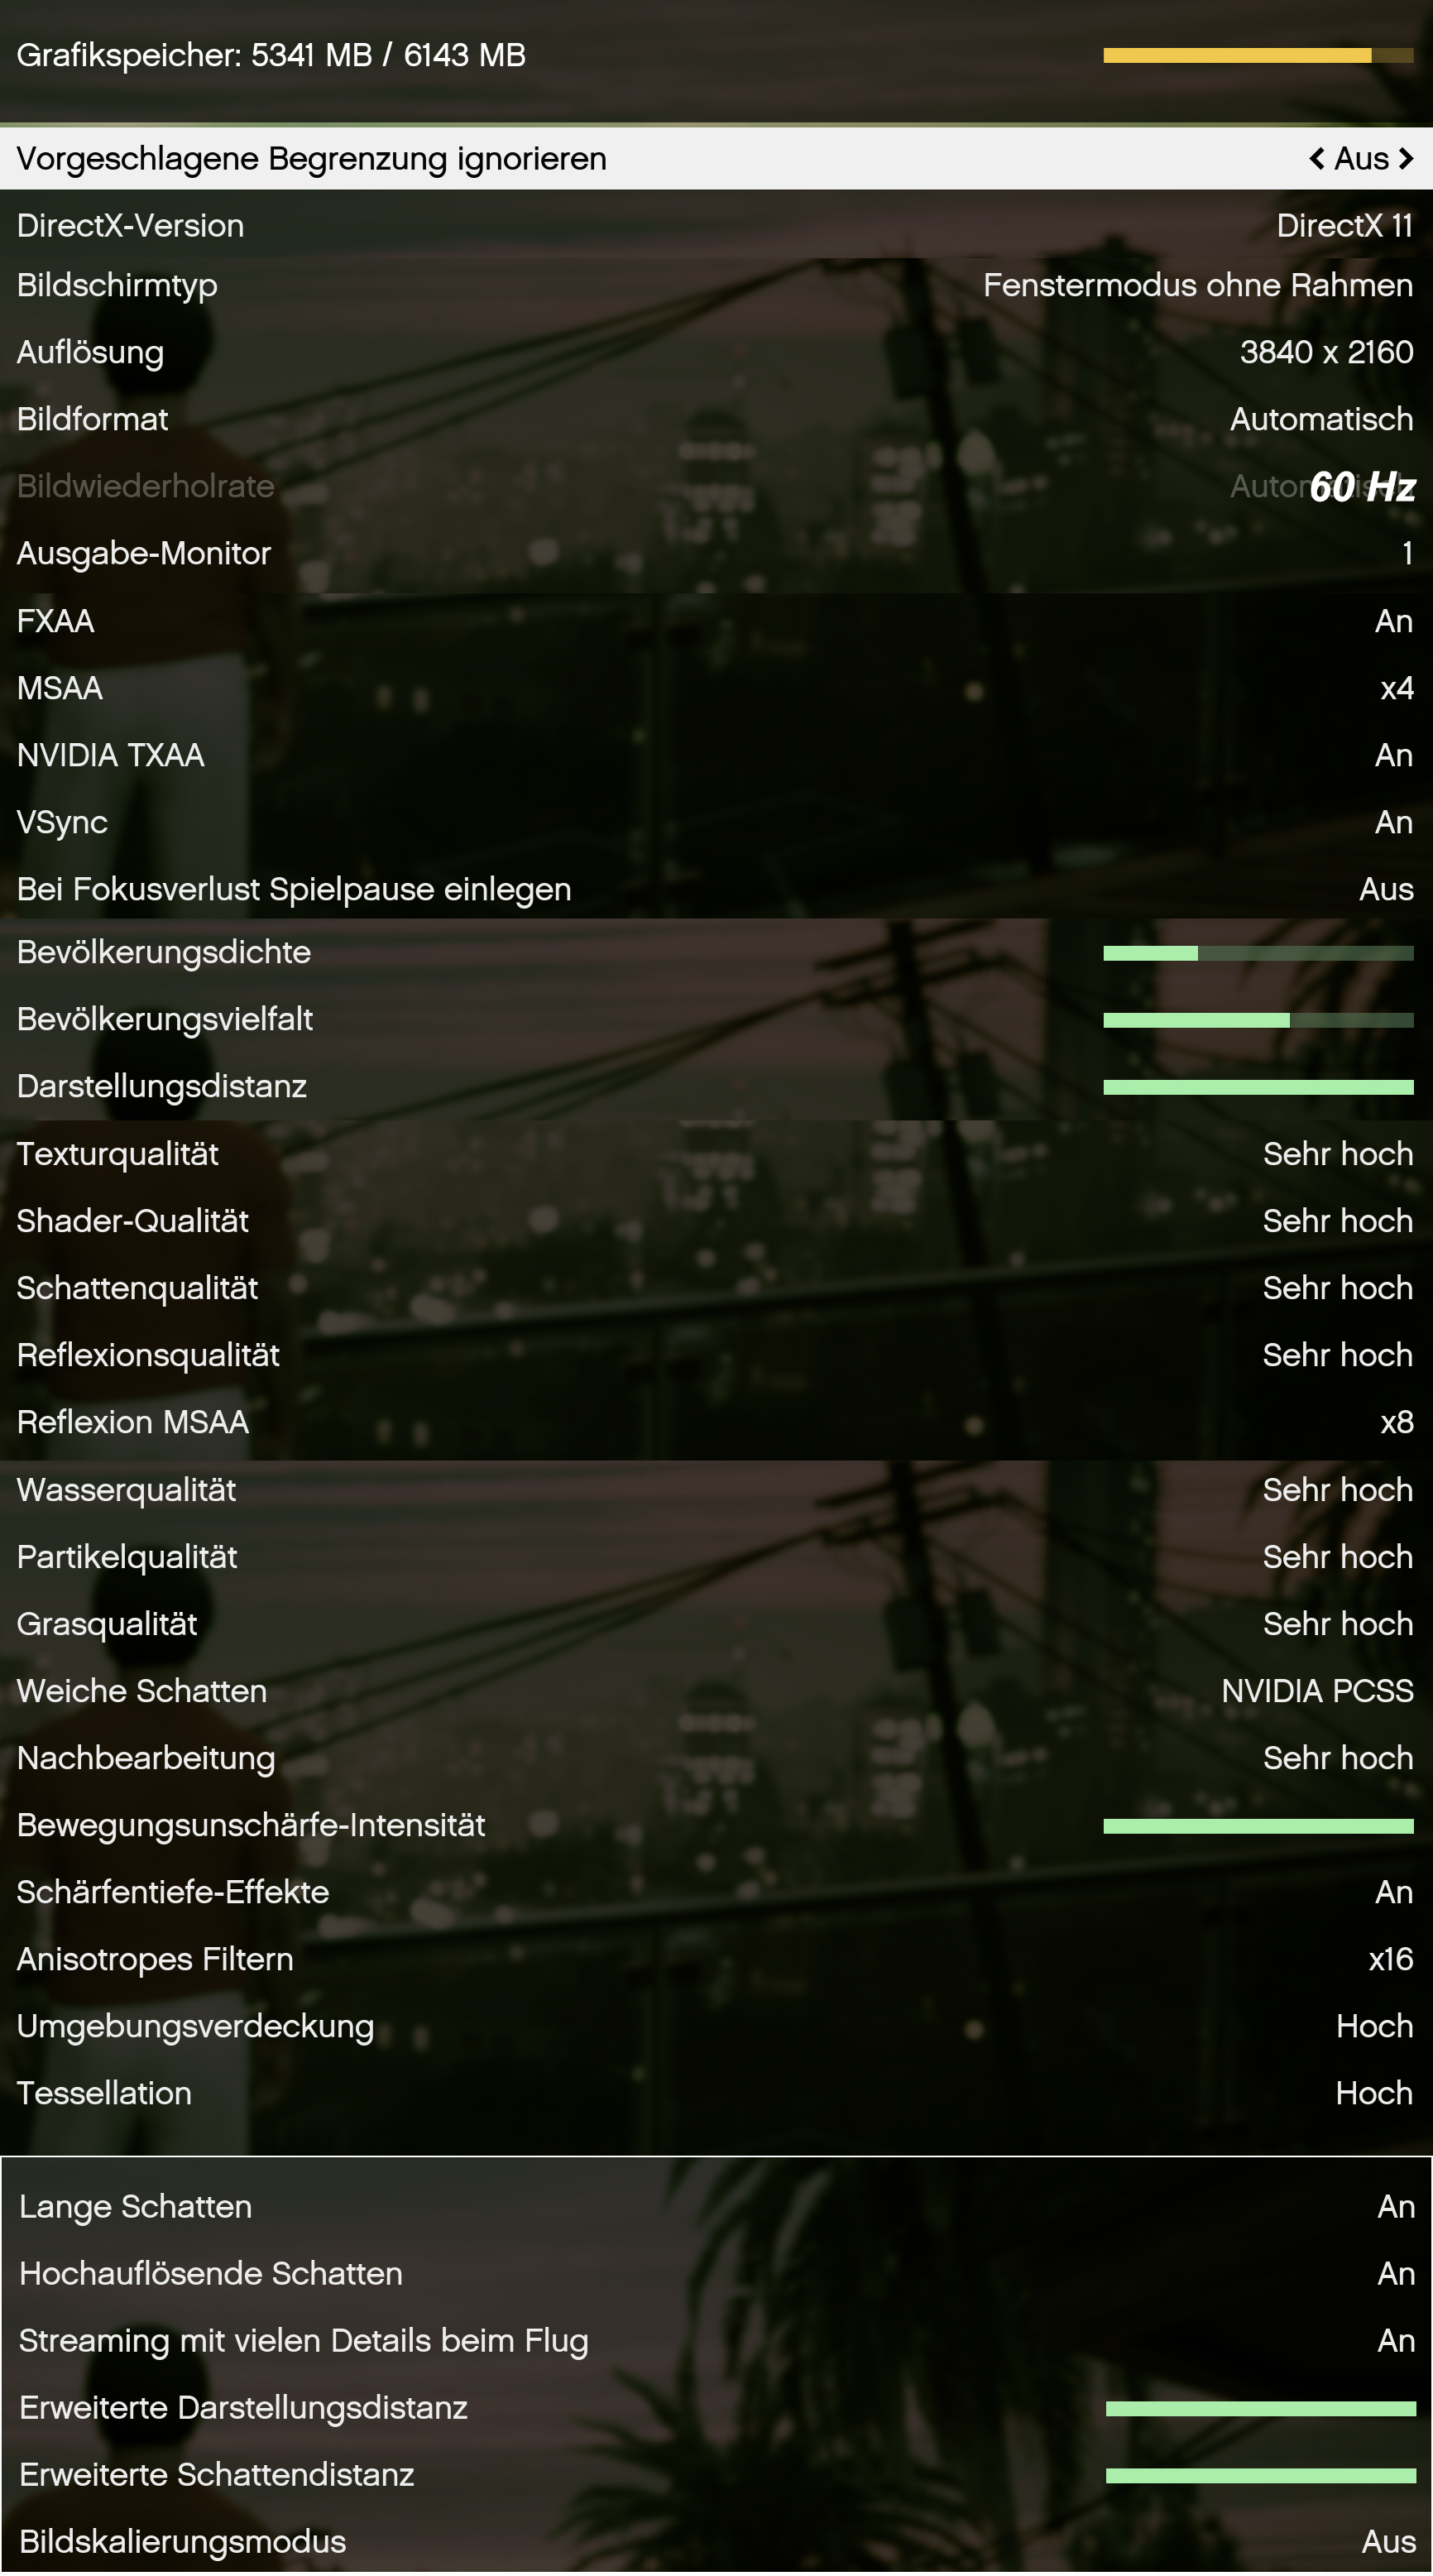 Best Graphic Settings on PC? - PC - GTAForums